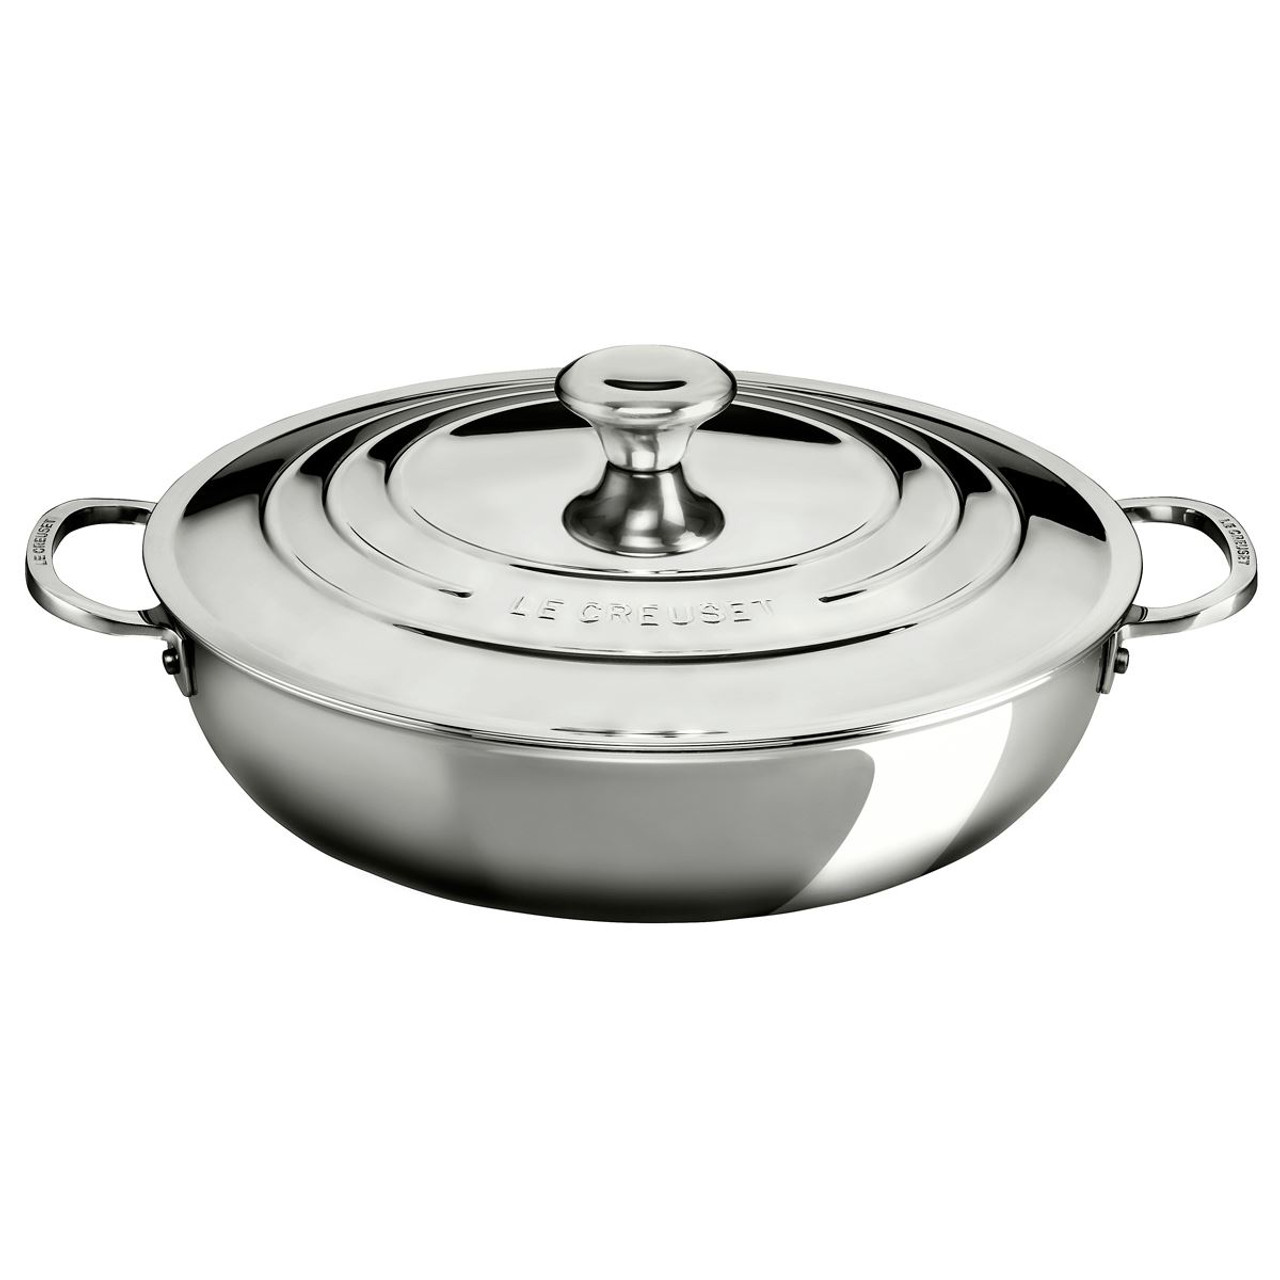 Le Creuset 30cm Stainless Steel Shallow Casserole